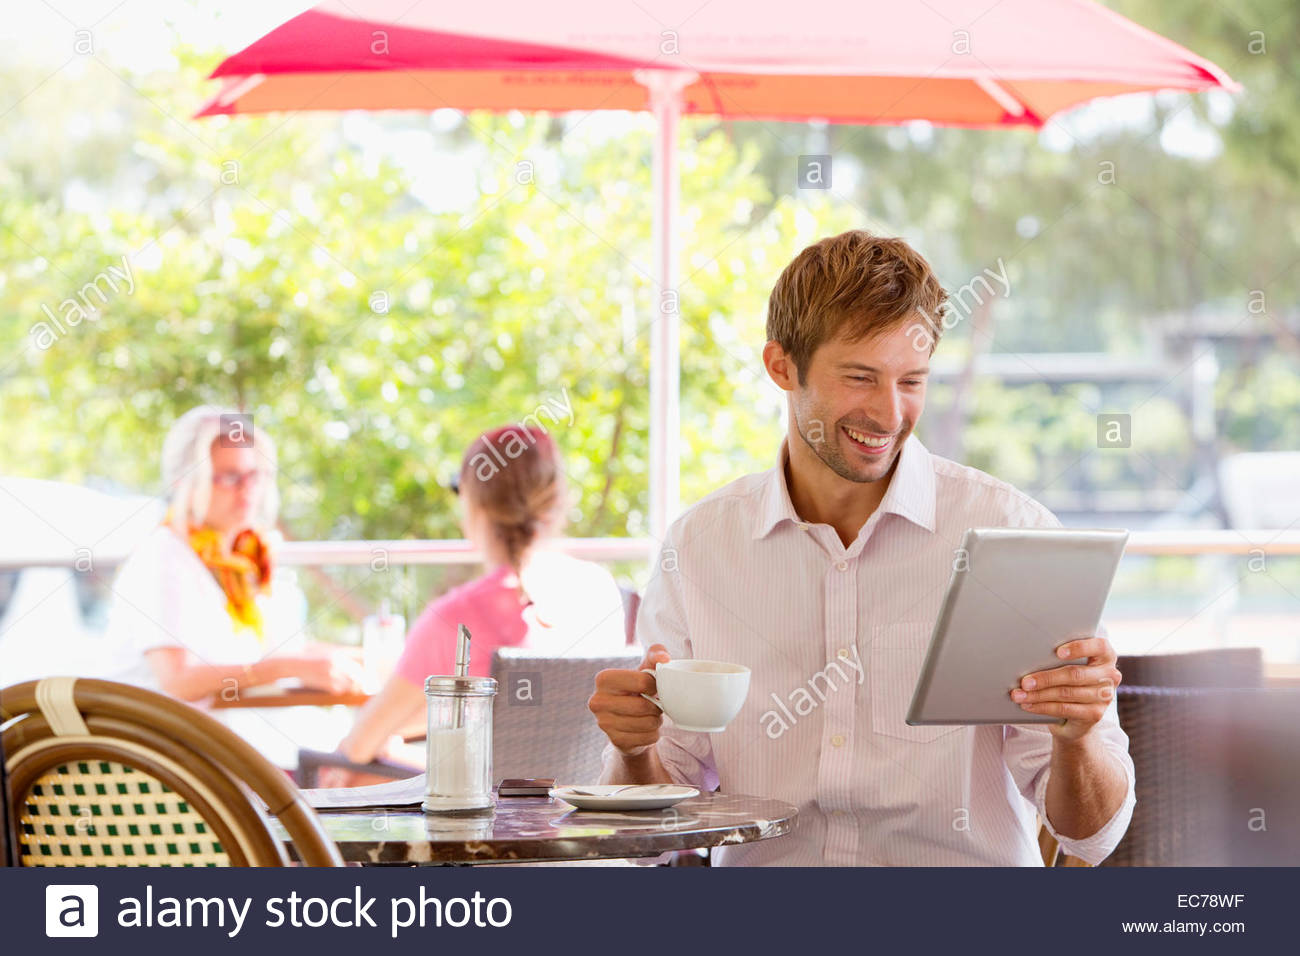 Man drinking coffee looking at digital tablet in outdoor caf - Stock Image